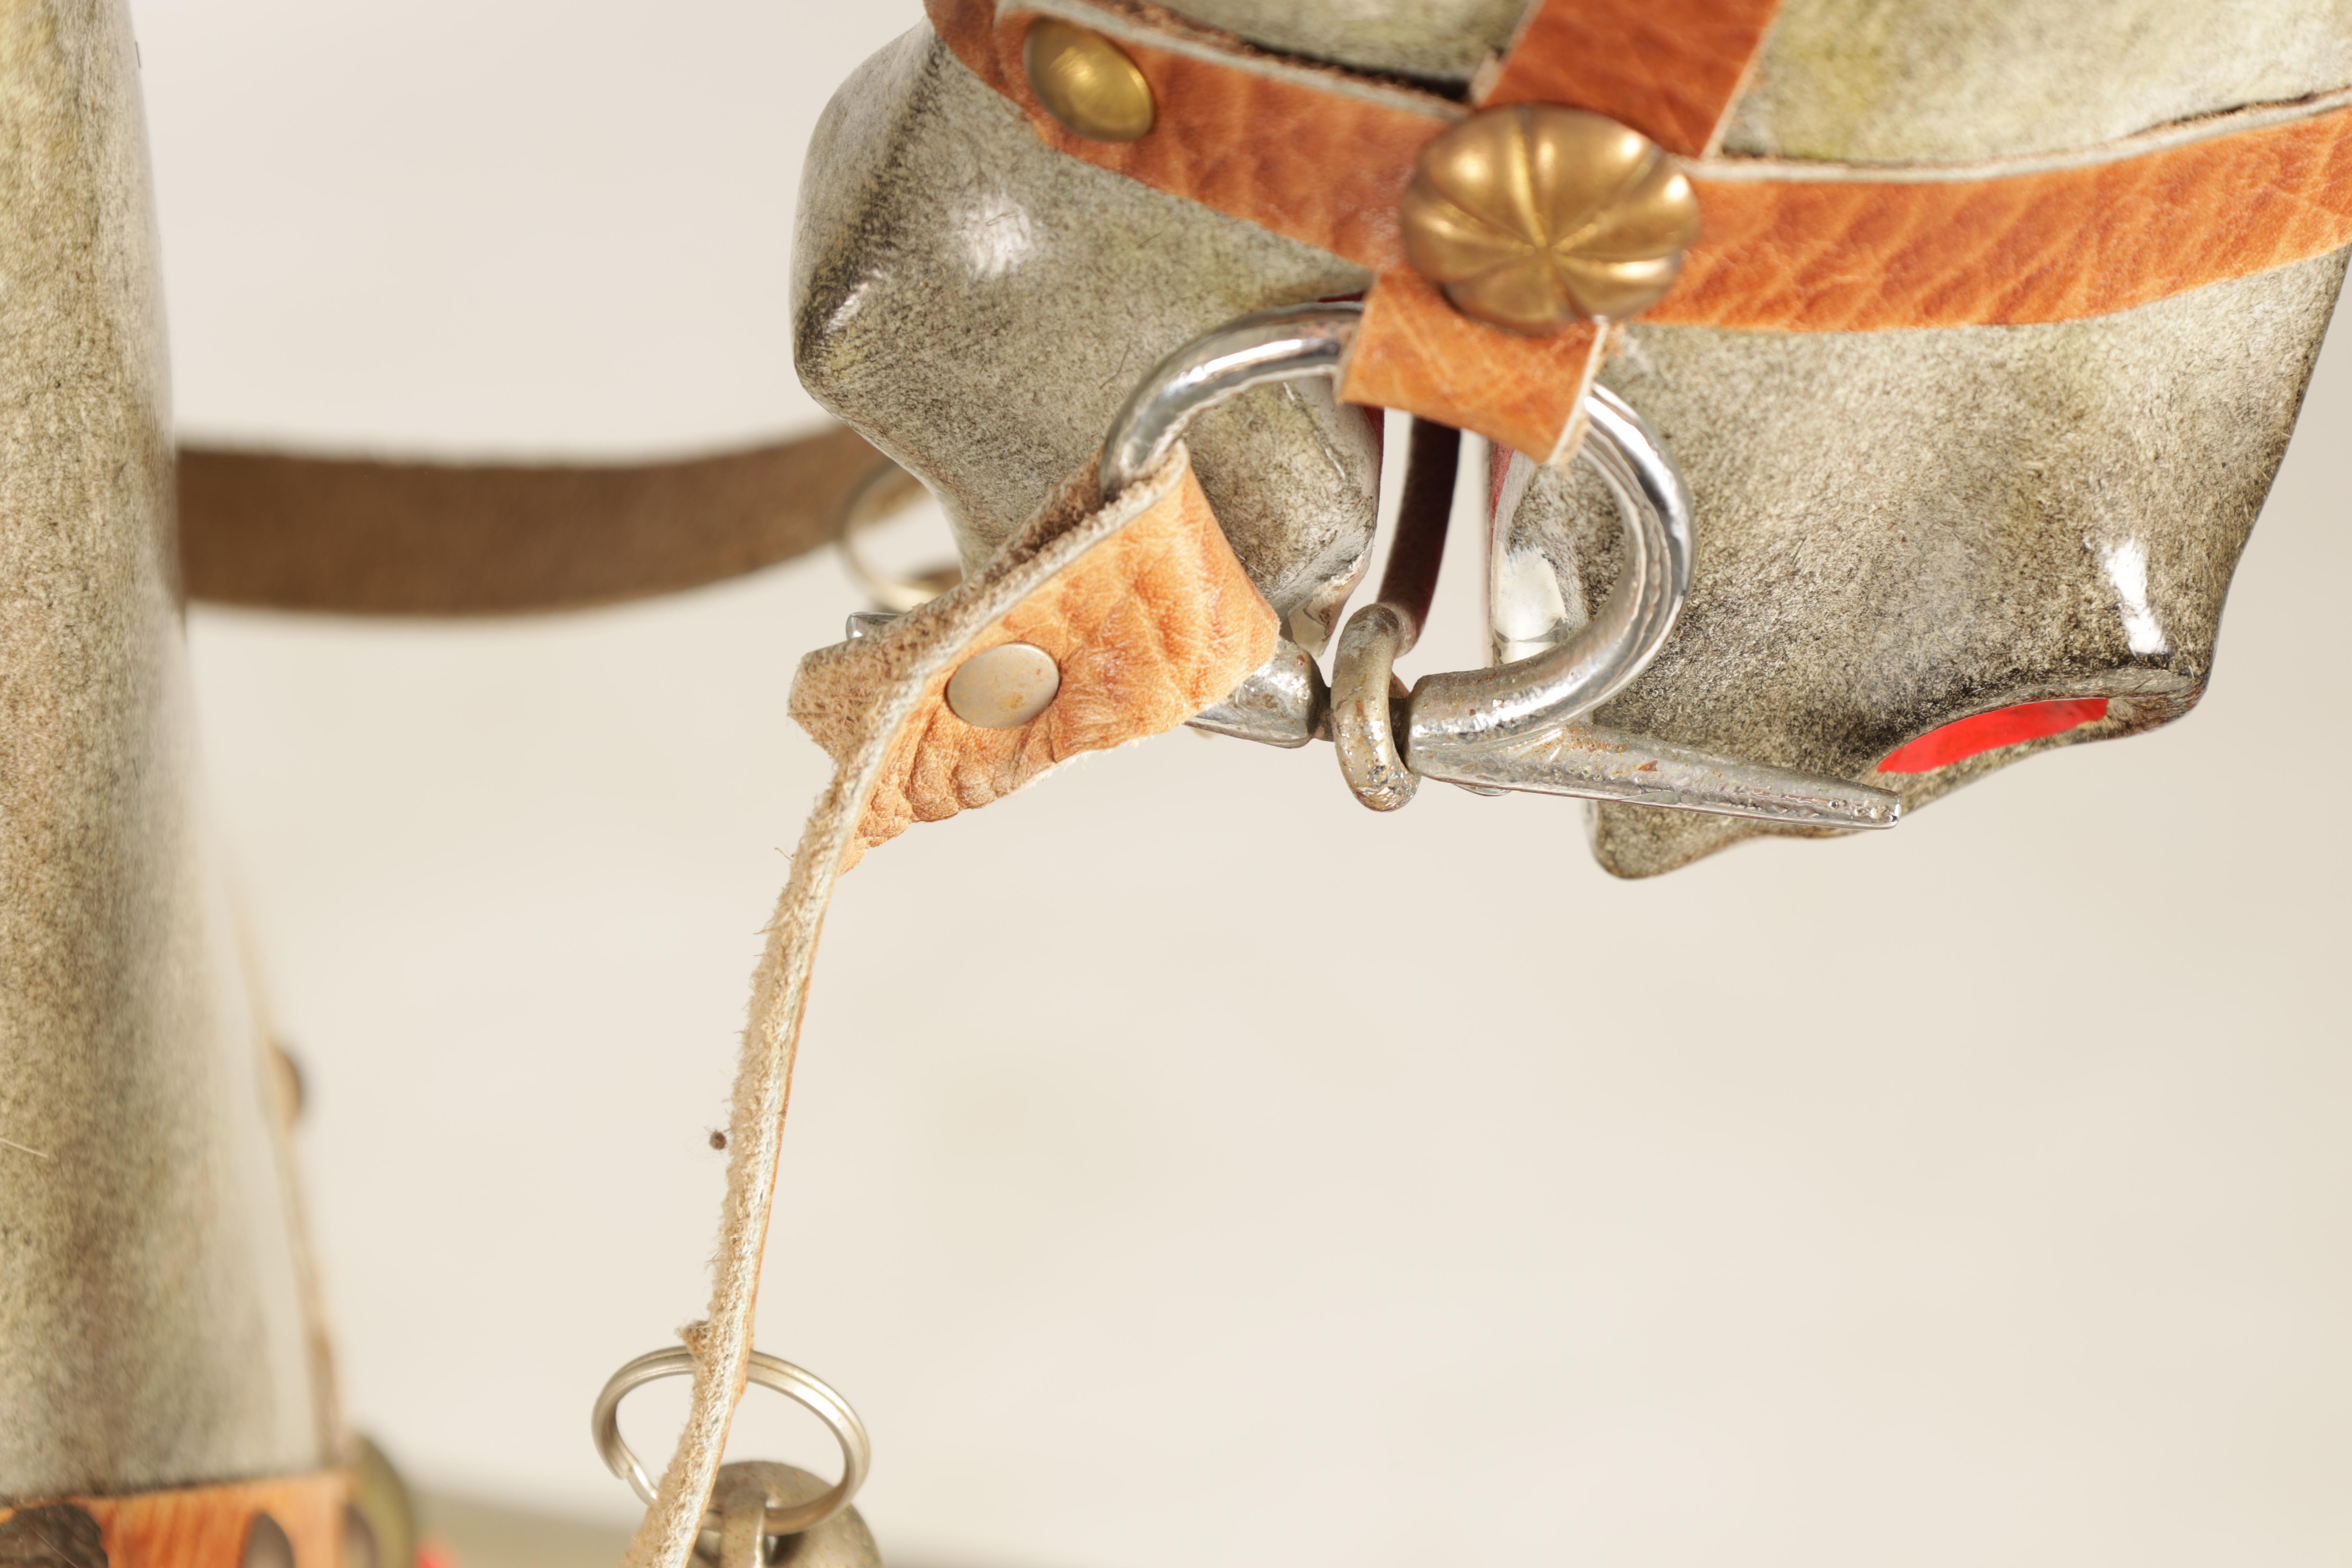 A 20TH CENTURY DAPPLE GREY PAINTED WOODEN ROCKING HORSE with leather seat and bridle 138cm wide - Image 5 of 8